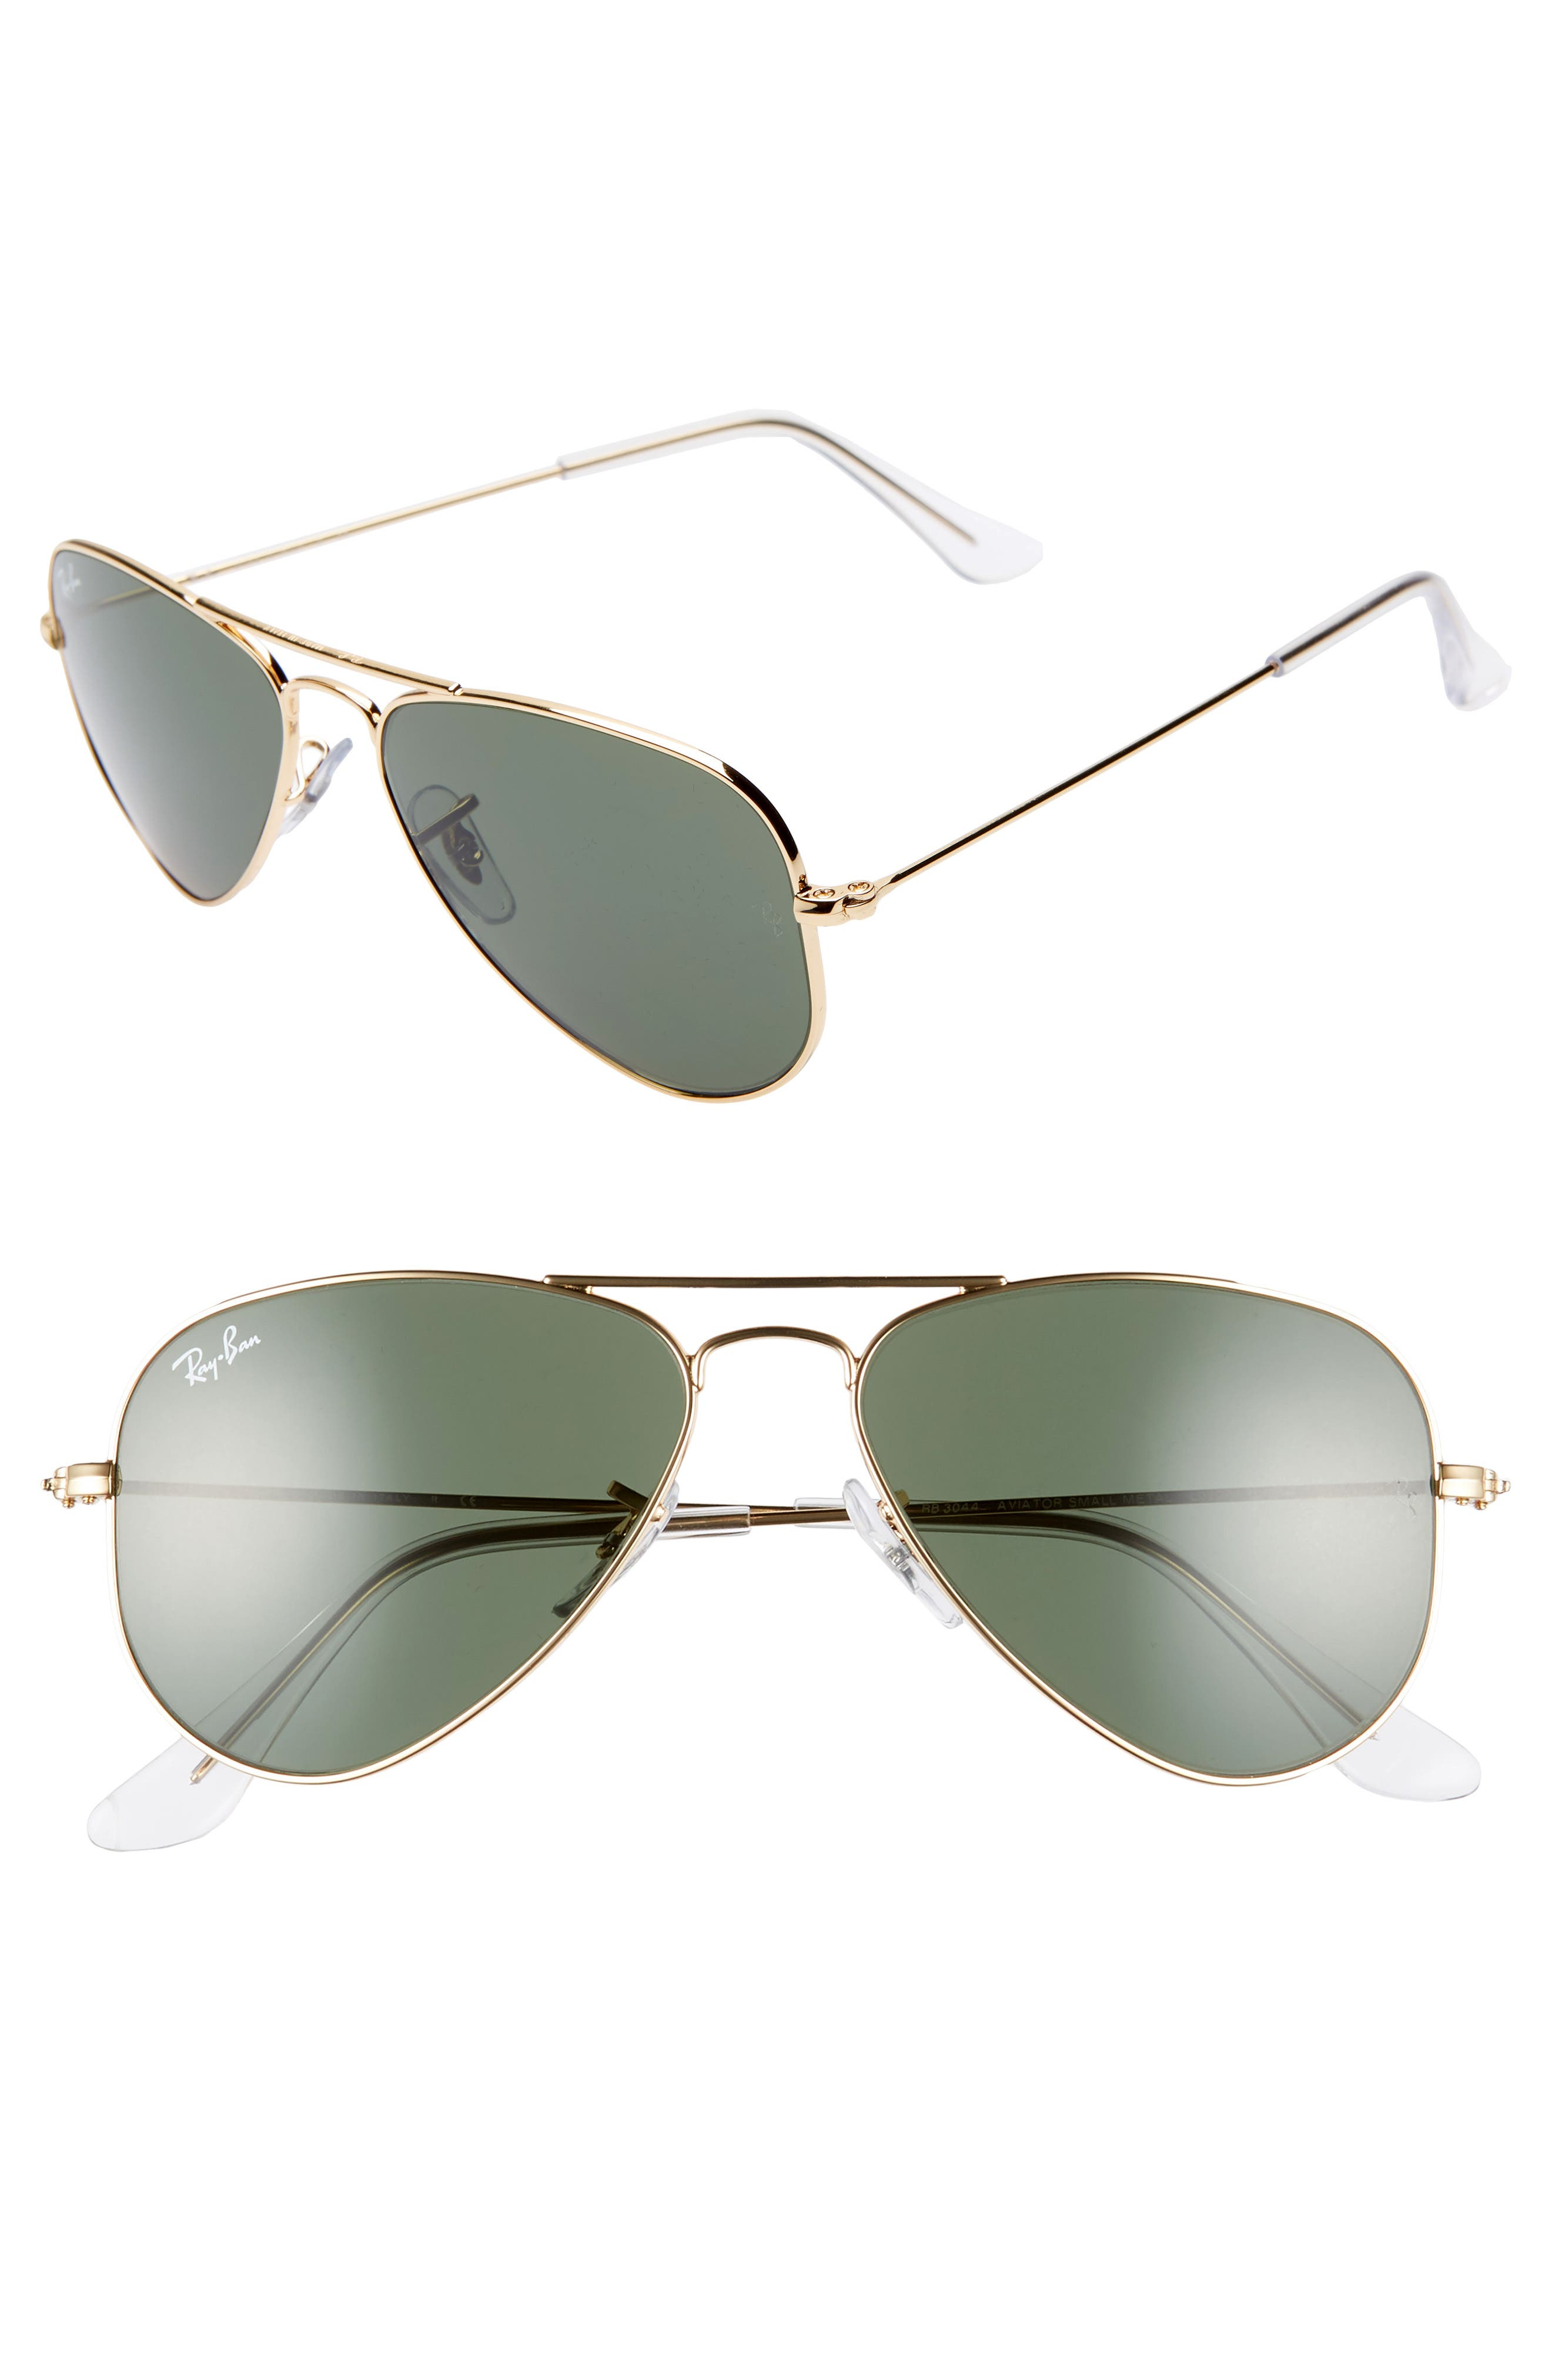 52mm Extra Small Aviator Sunglasses,                             Main thumbnail 1, color,                             GOLD/ GREEN SOLID